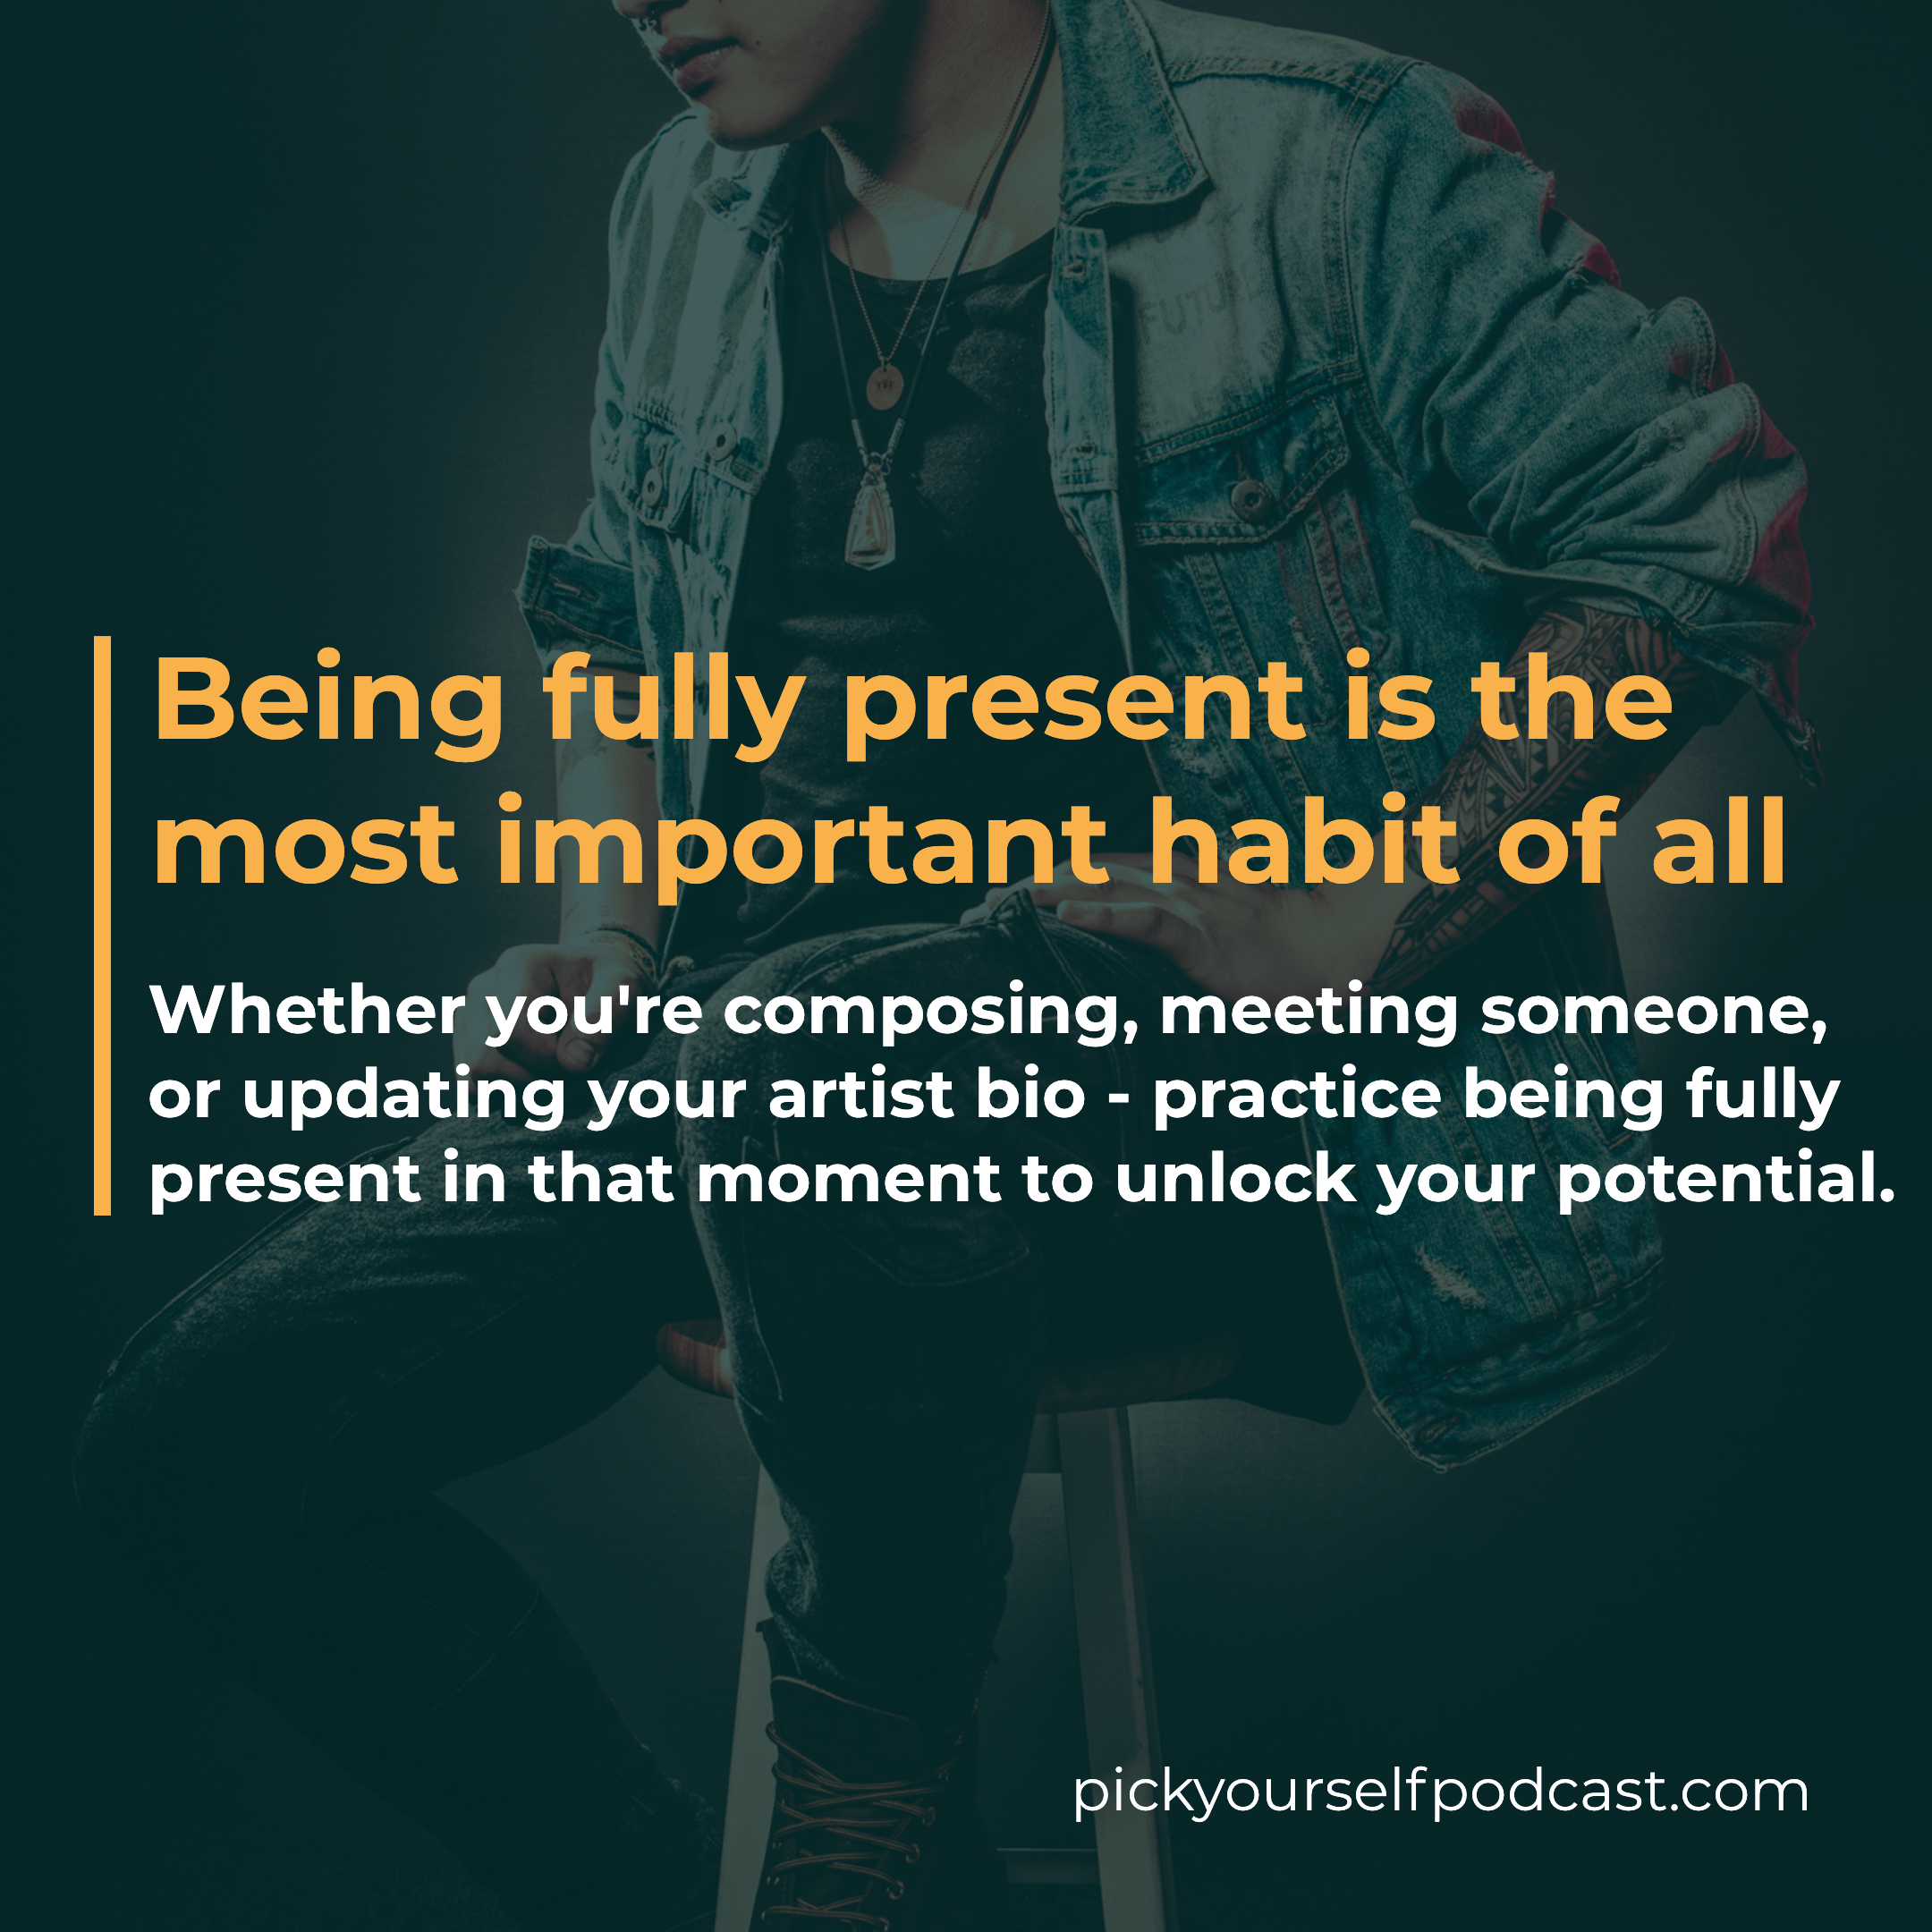 Whether you're composing, meeting someone, or updating your artist bio - practice being fully present in that moment to unlock your potential.